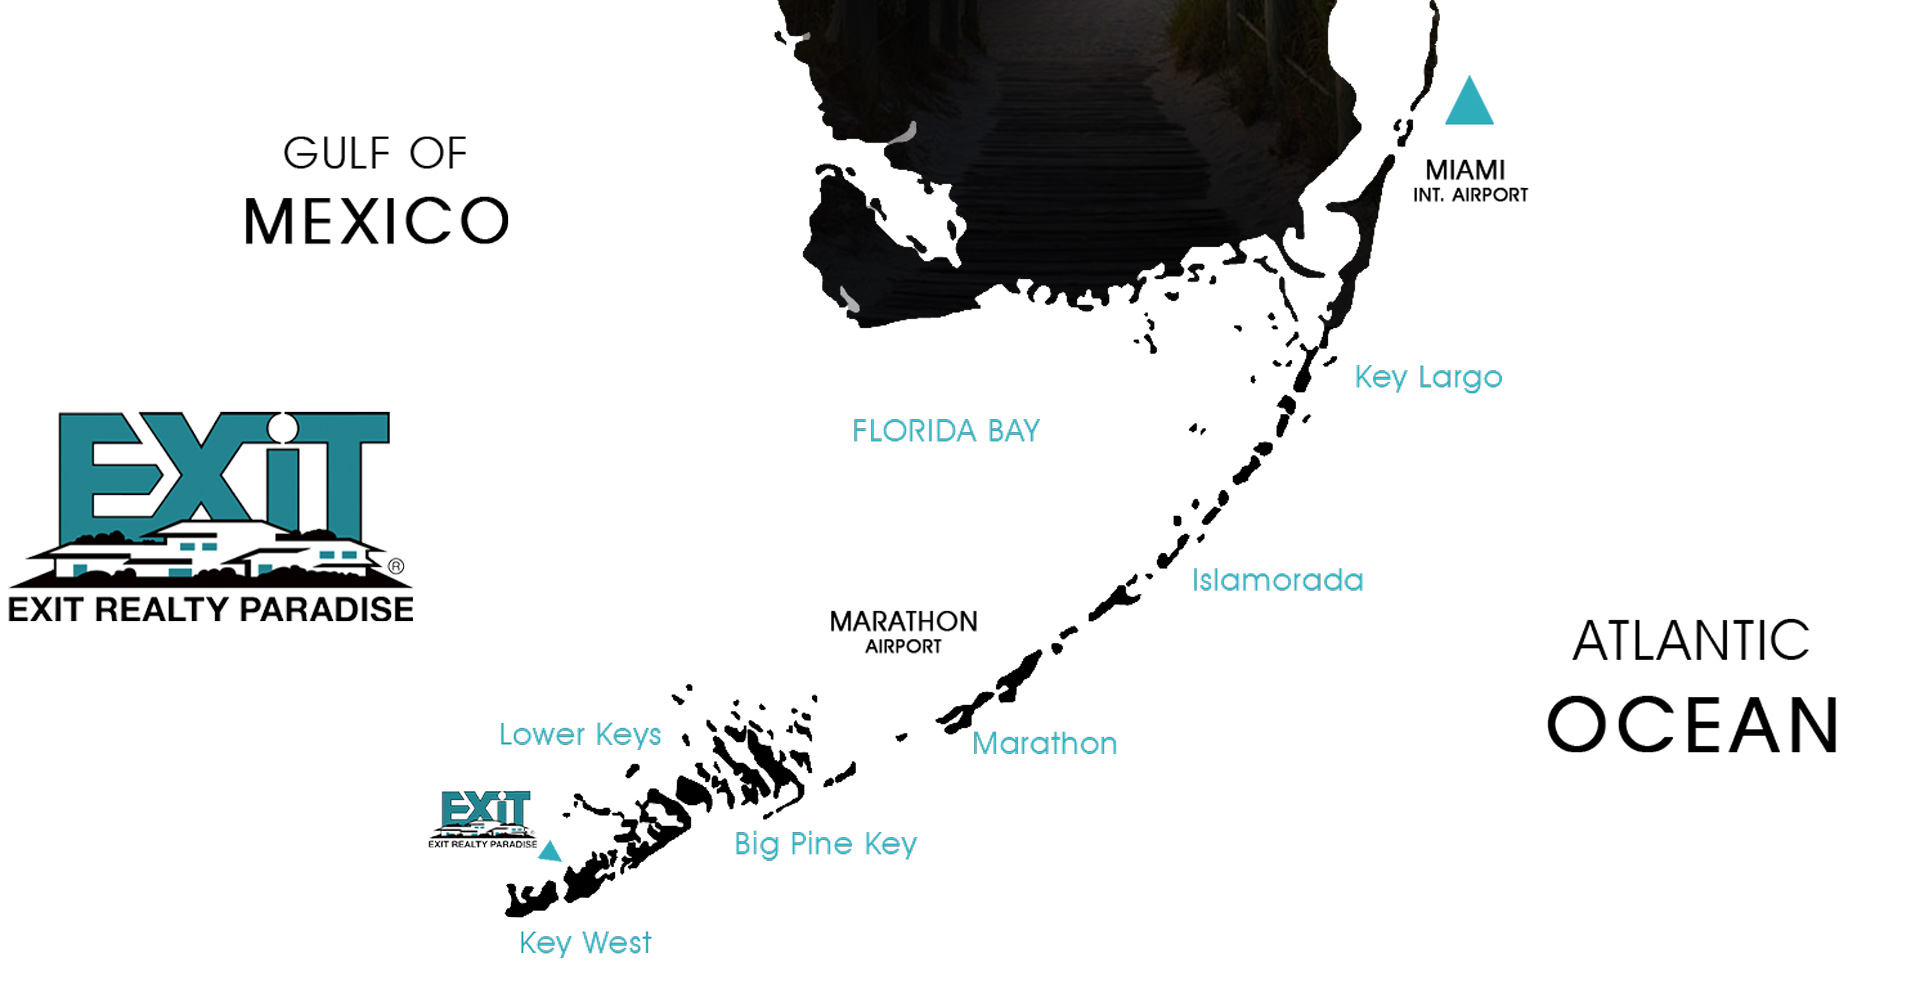 EXIT Realty Paradise Map of the Florida Keys